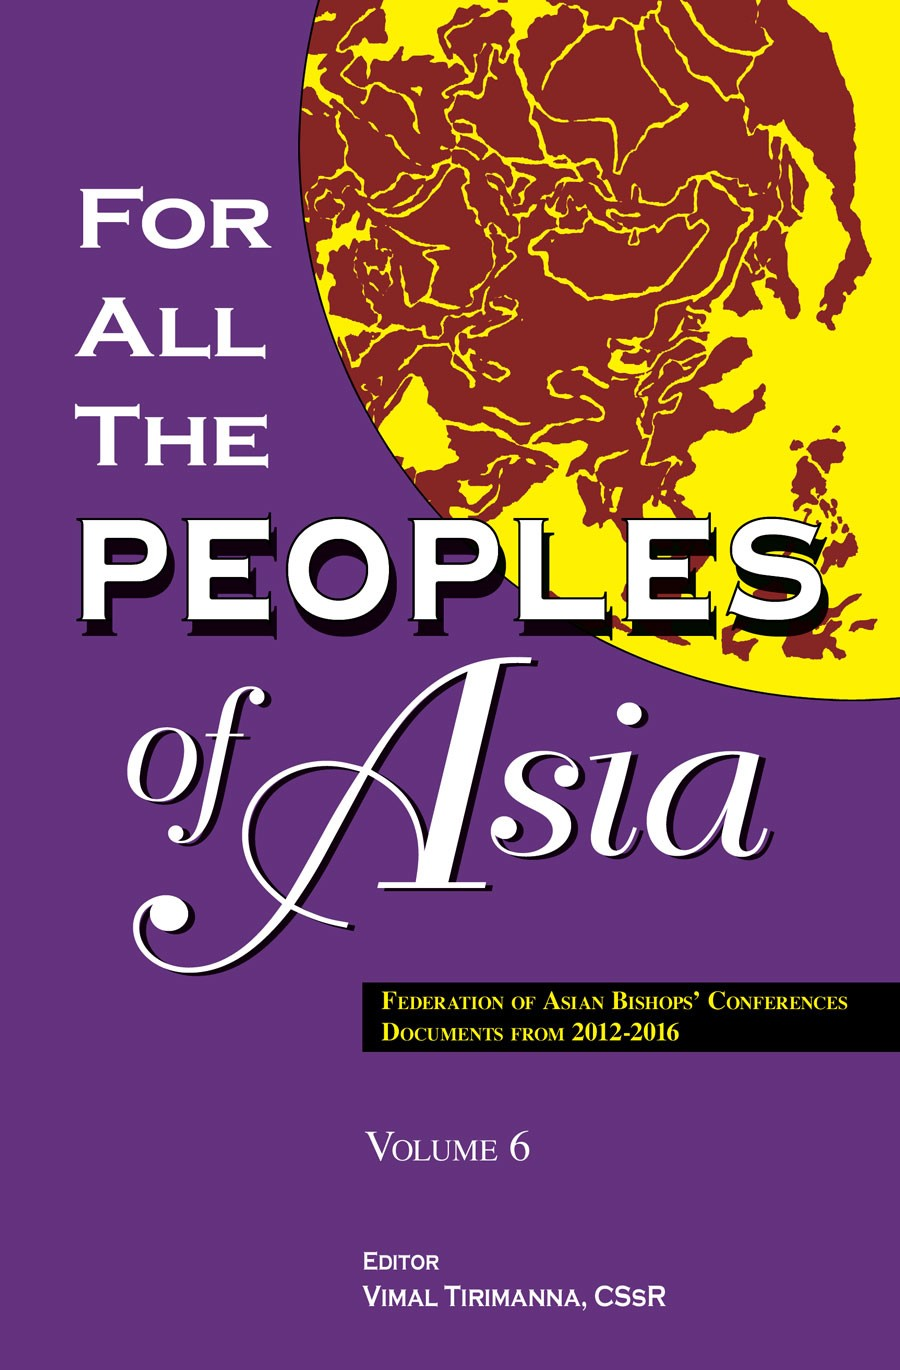 For All The Peoples of Asia Vol. 6